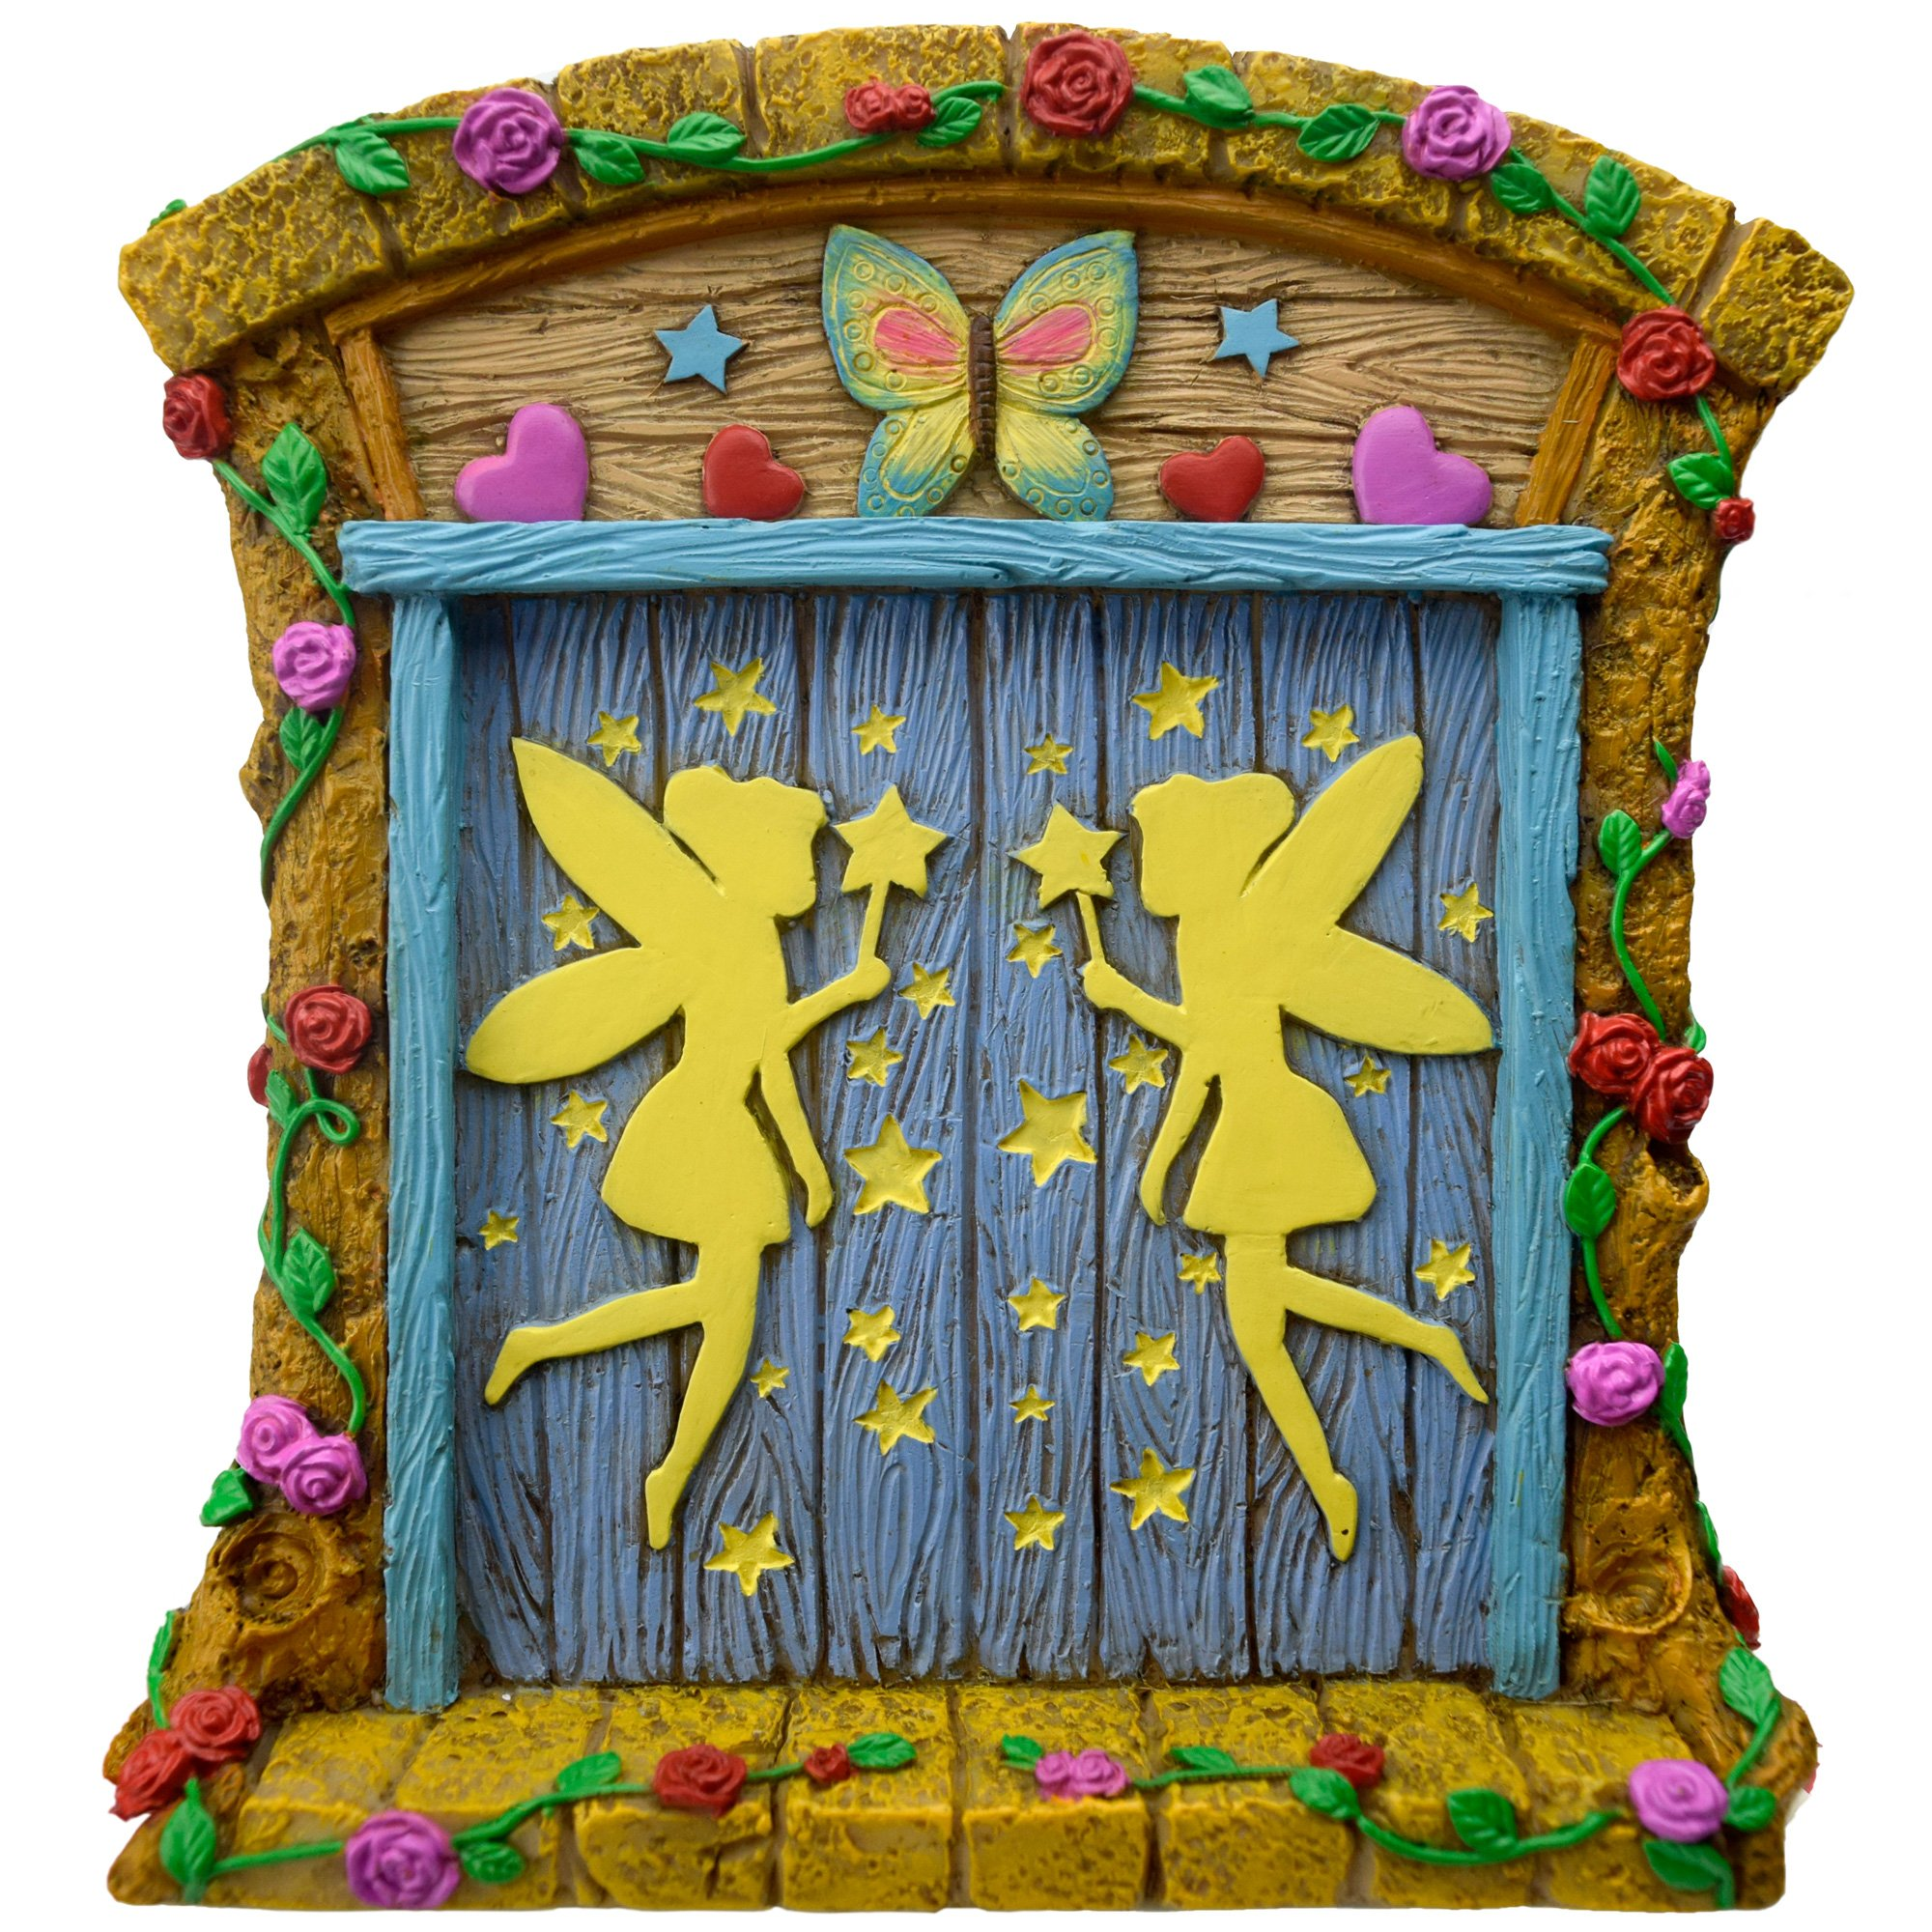 The Miniature Magical Fairy Garden Gnome Home Door (with Hand Painted Flowers, Vines, Stars, Hearts, Care and Cuteness) by Twig & Flower